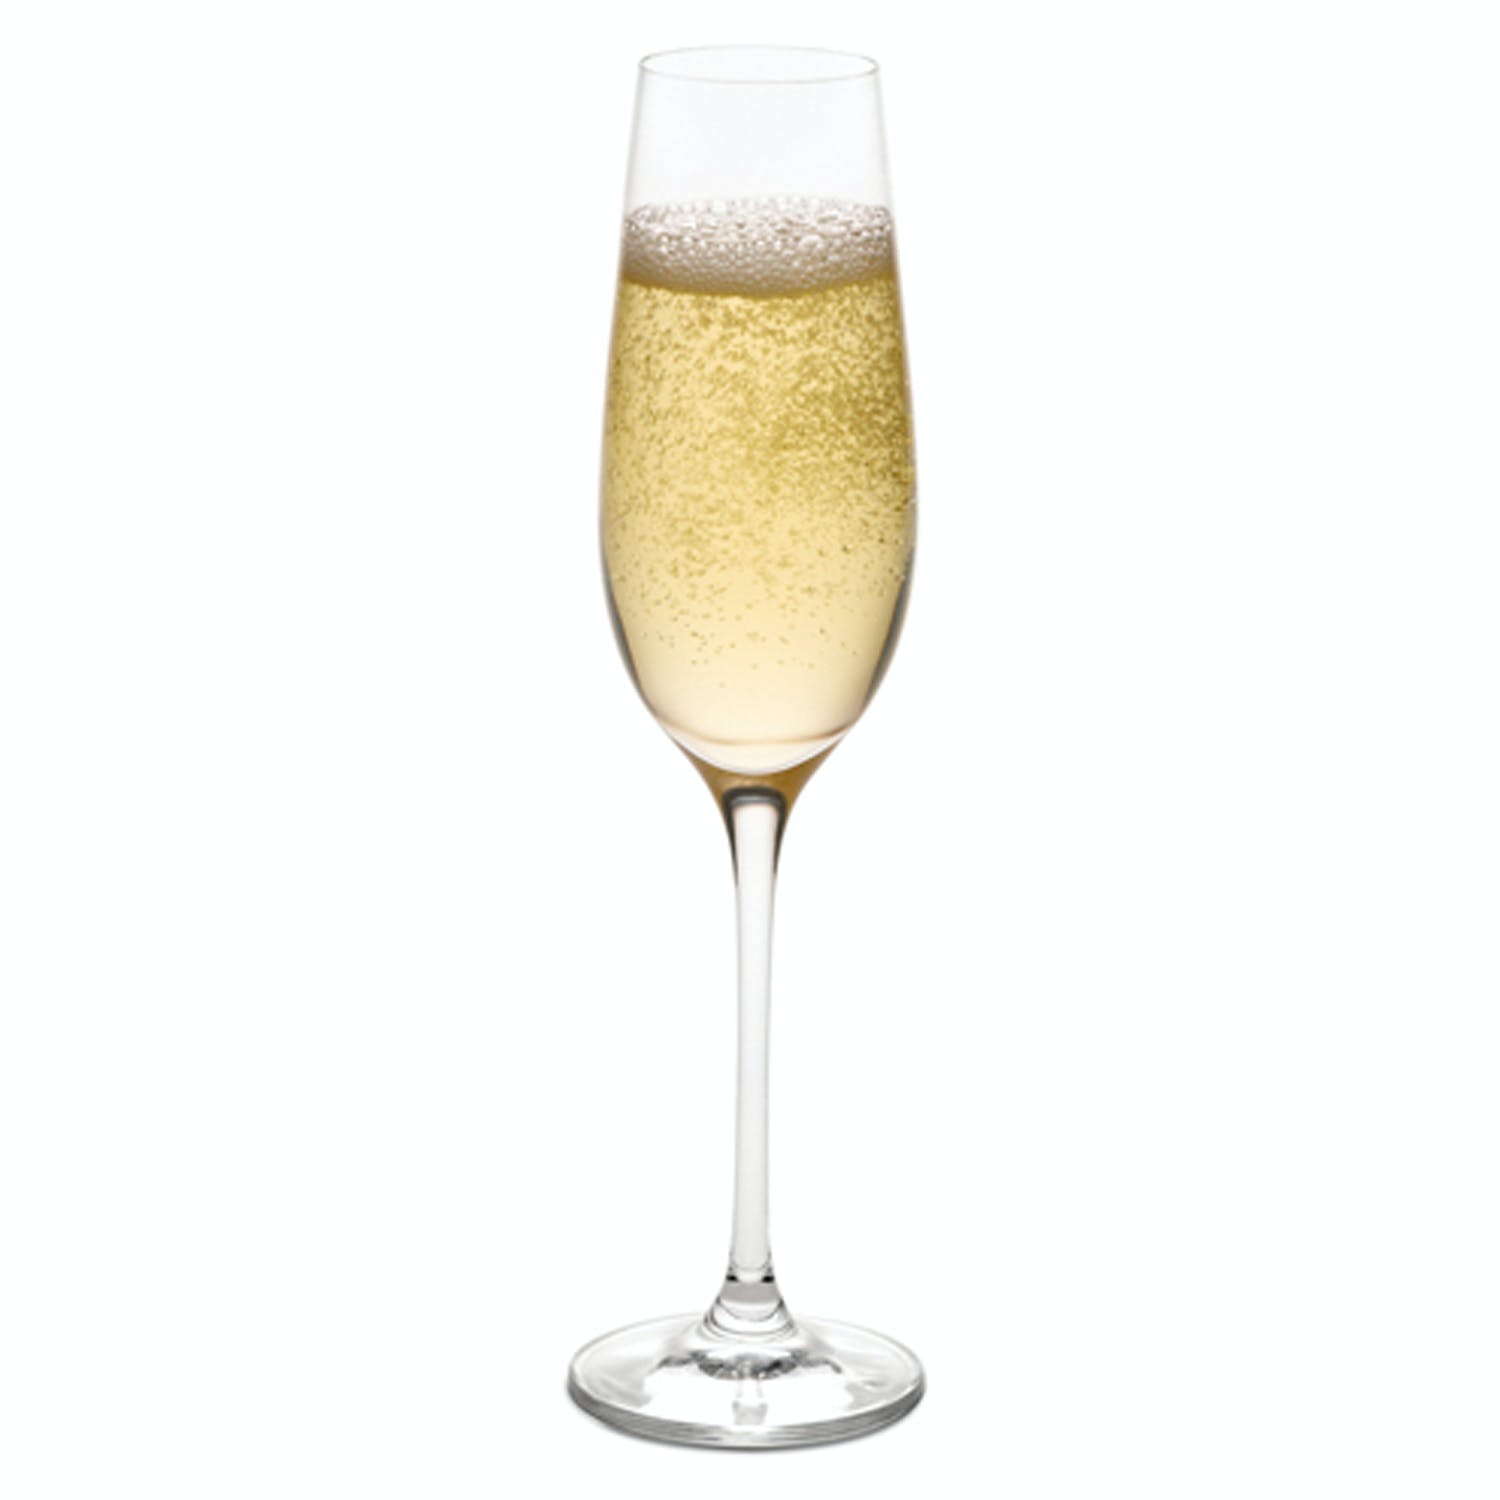 Titanium Pro Champagne Glass (Master Carton of 24) Wine glass sold by Ravenscroft Crystal